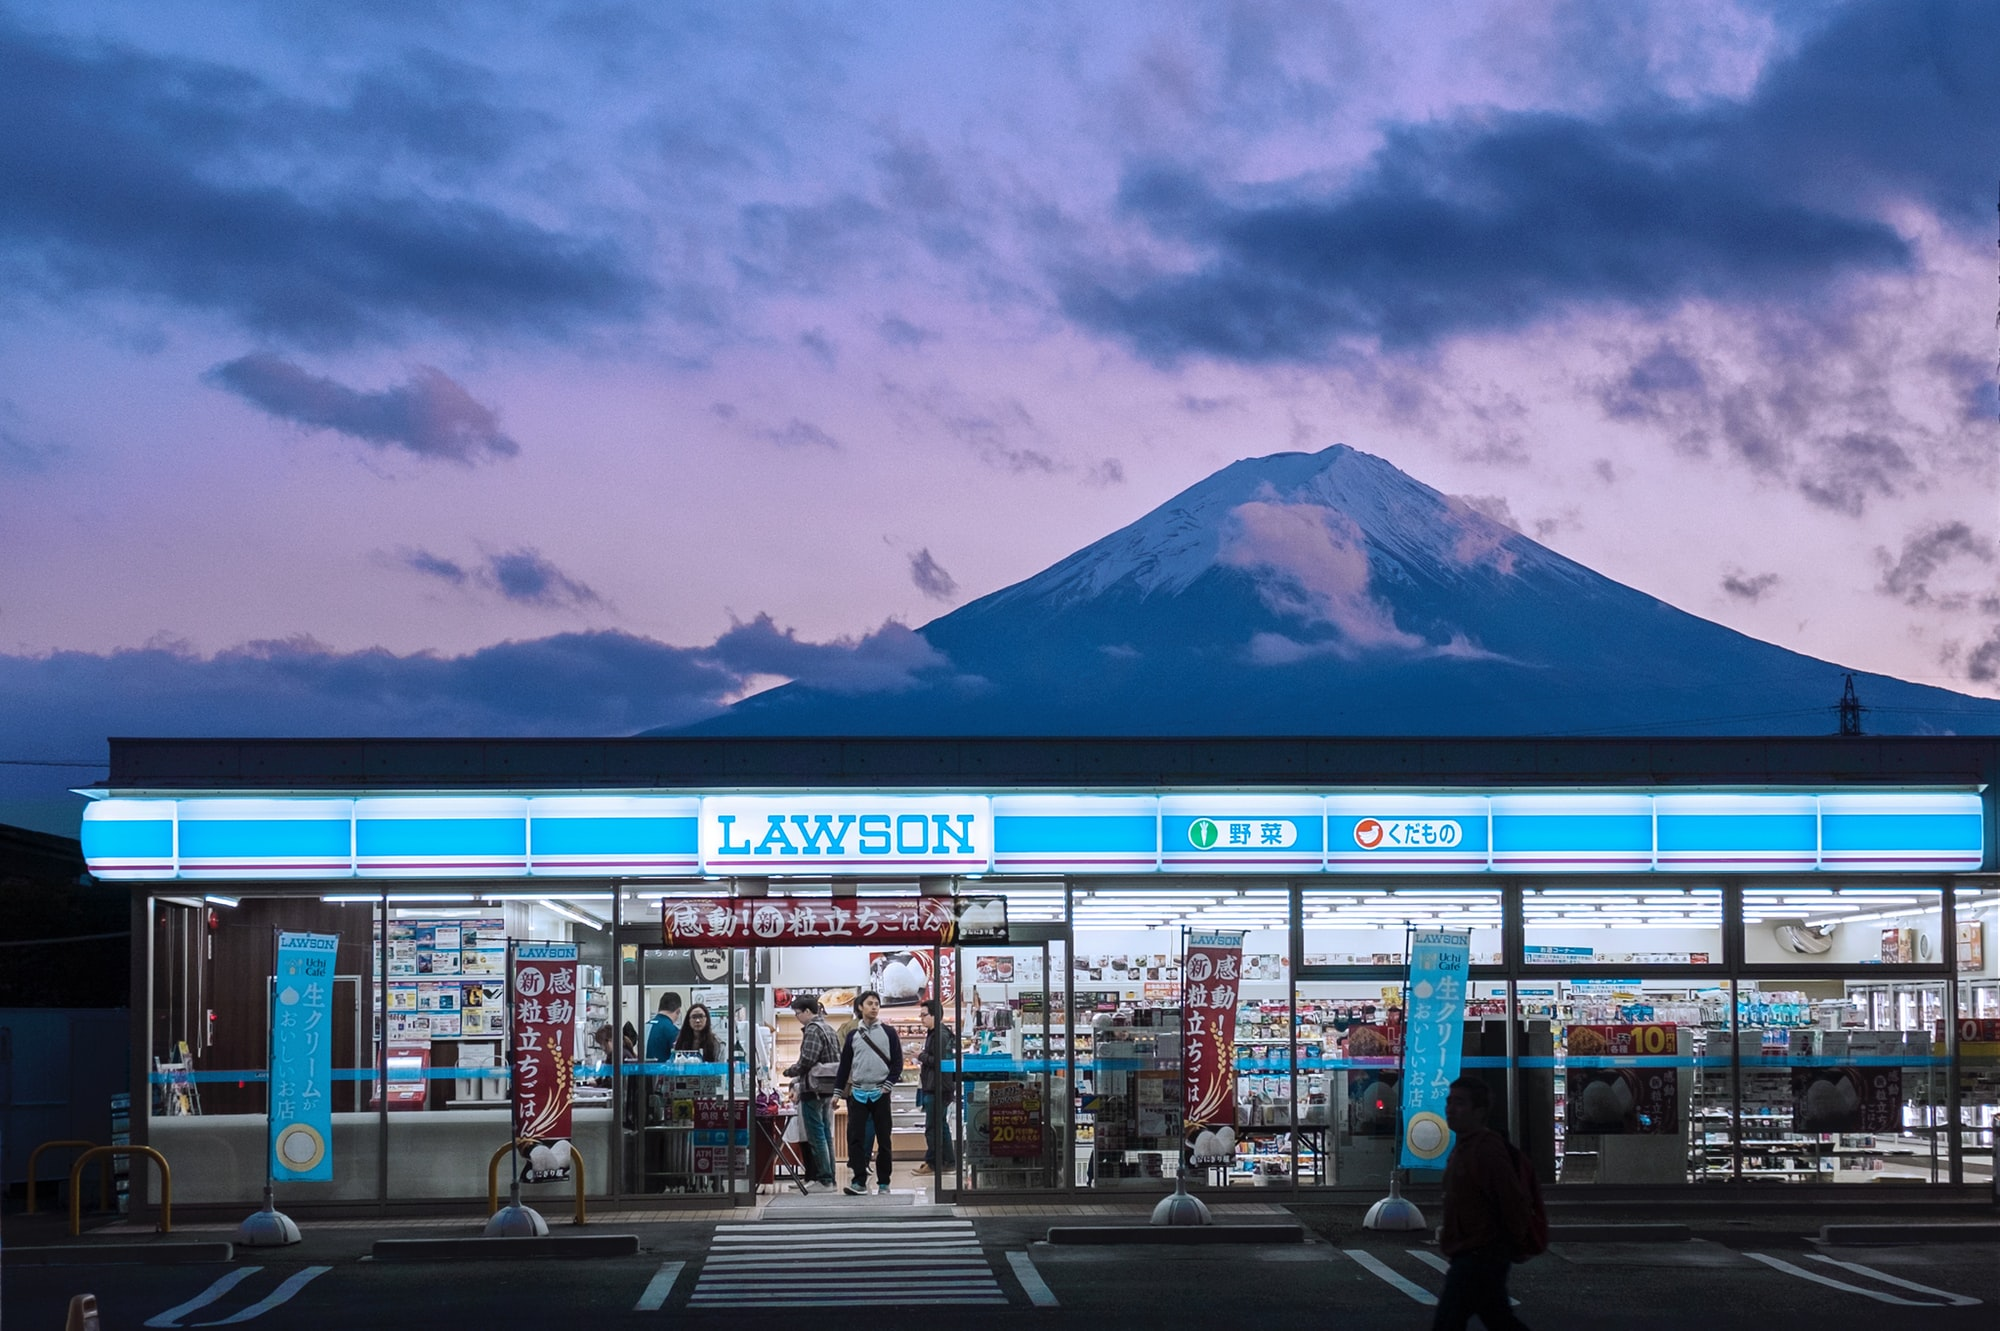 If we can see the fuji mountain , then we been together